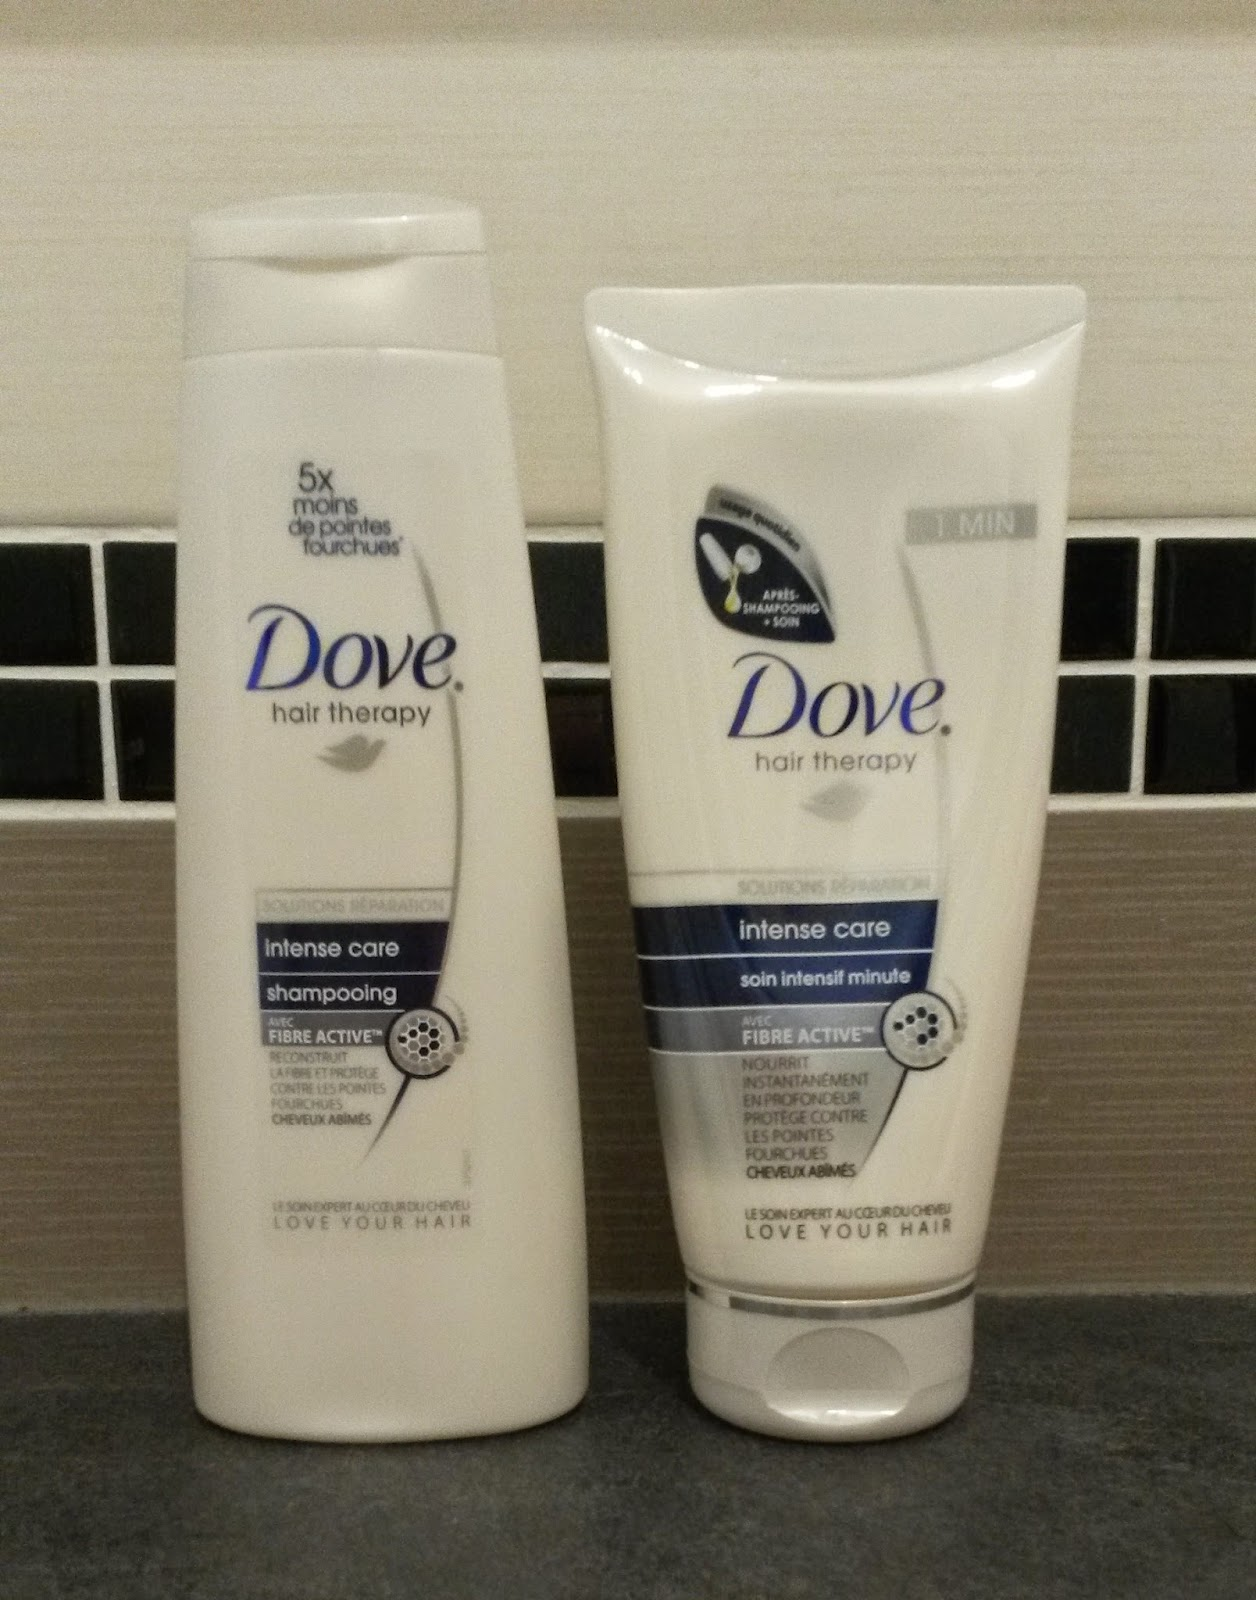 Gamme Intense care Dove shampoing et soin